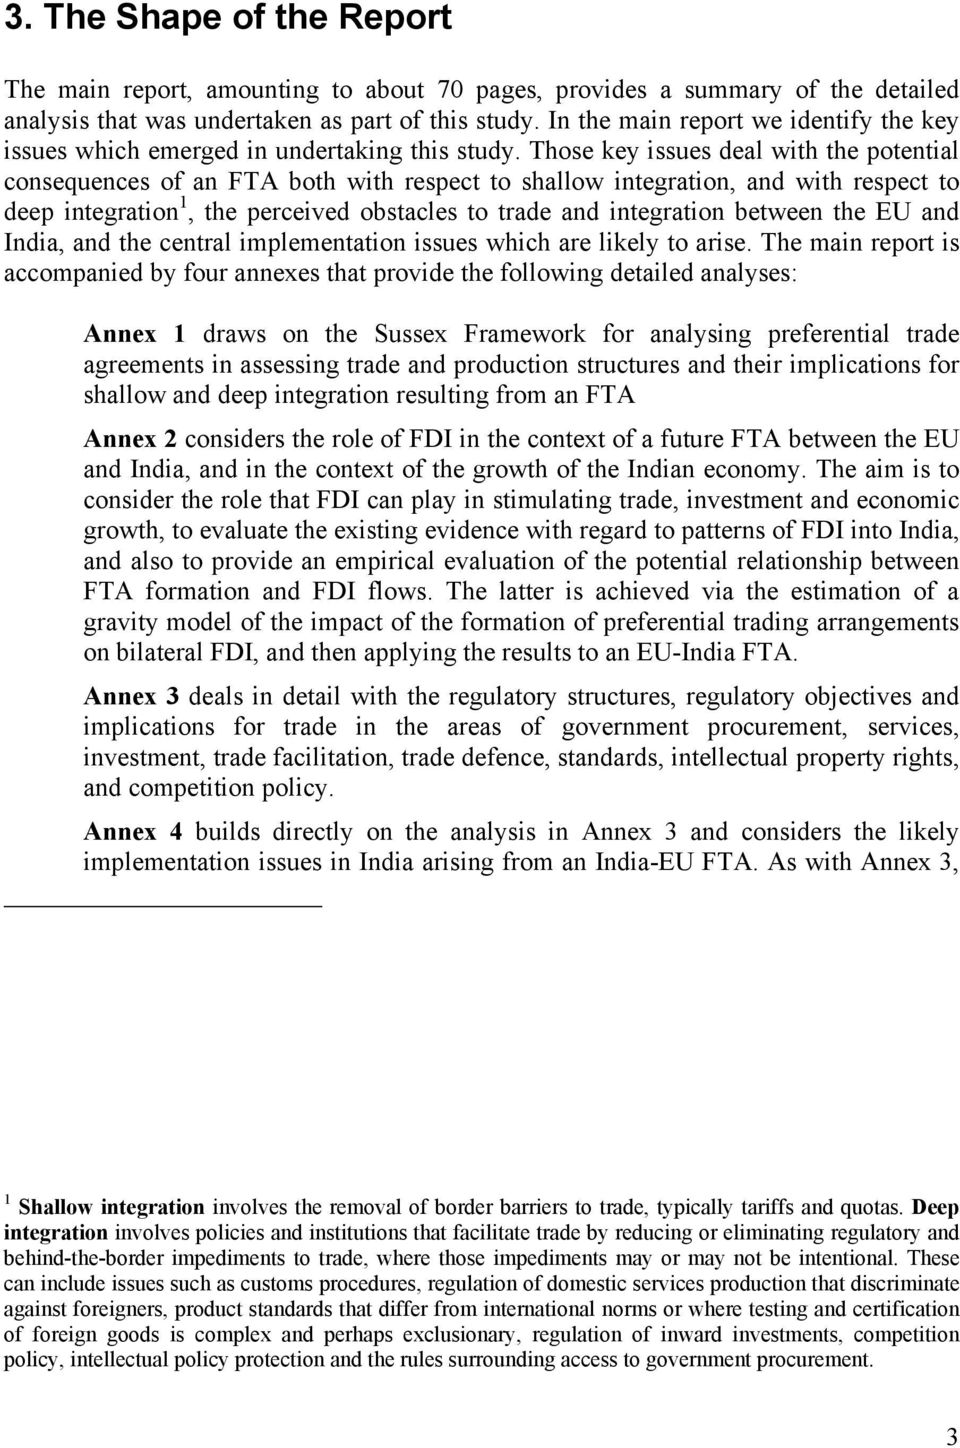 Those key issues deal with the potential consequences of an FTA both with respect to shallow integration, and with respect to deep integration 1, the perceived obstacles to trade and integration